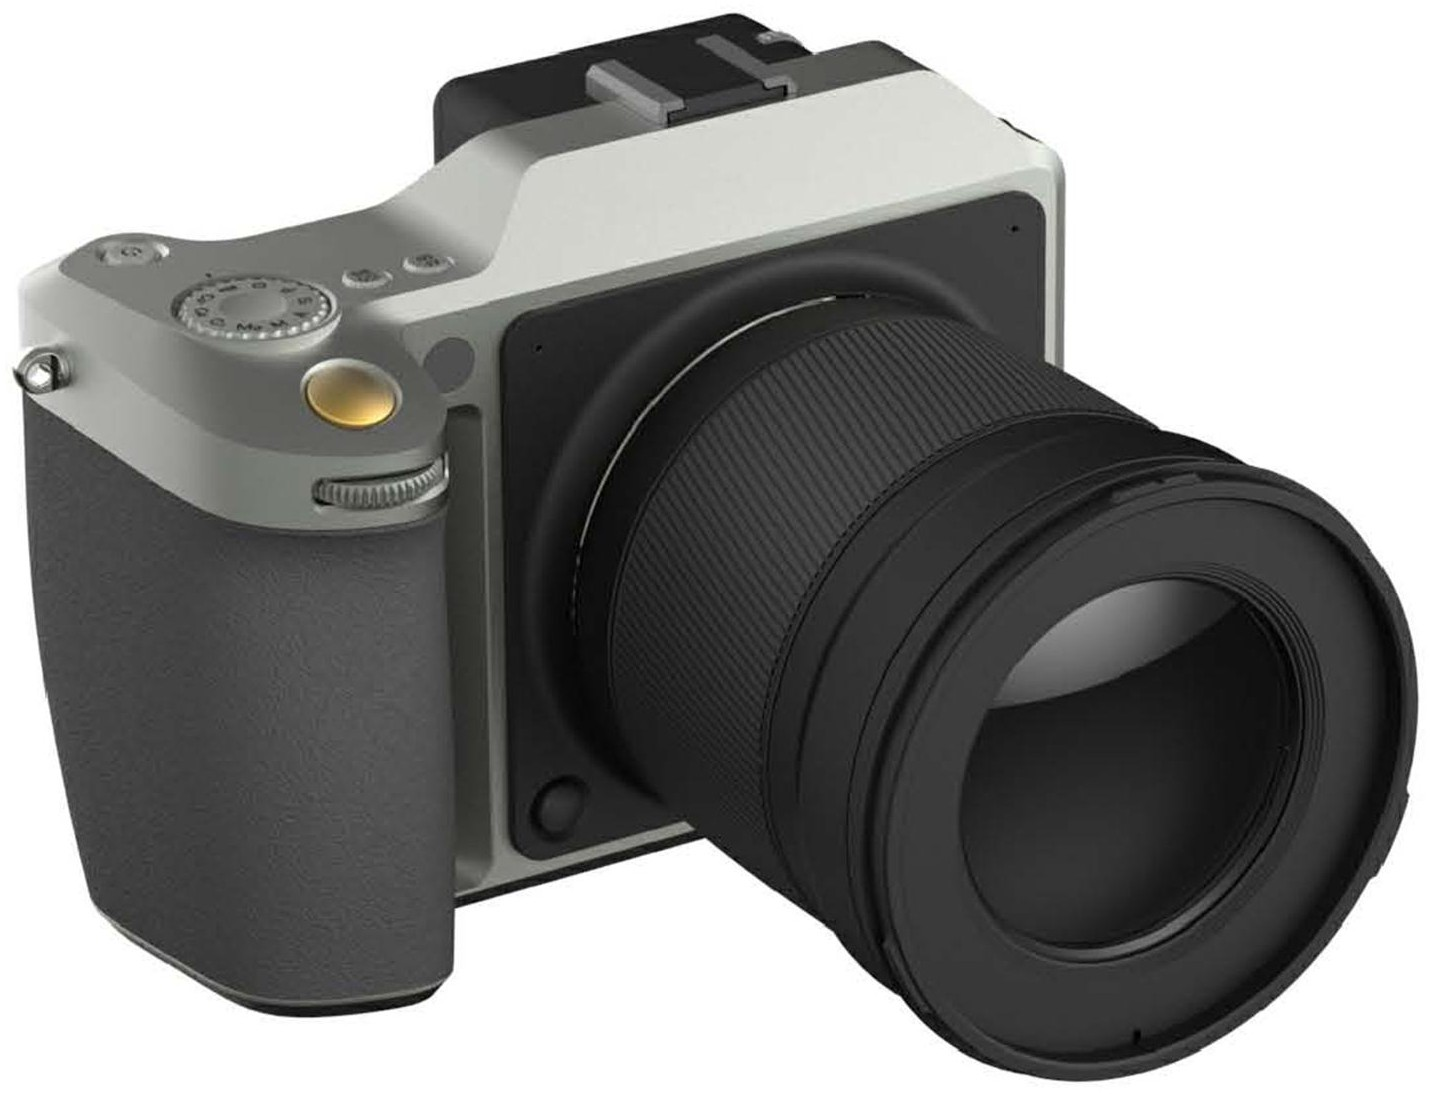 Rumors: DJI coming with a mirrorless camera that looks like